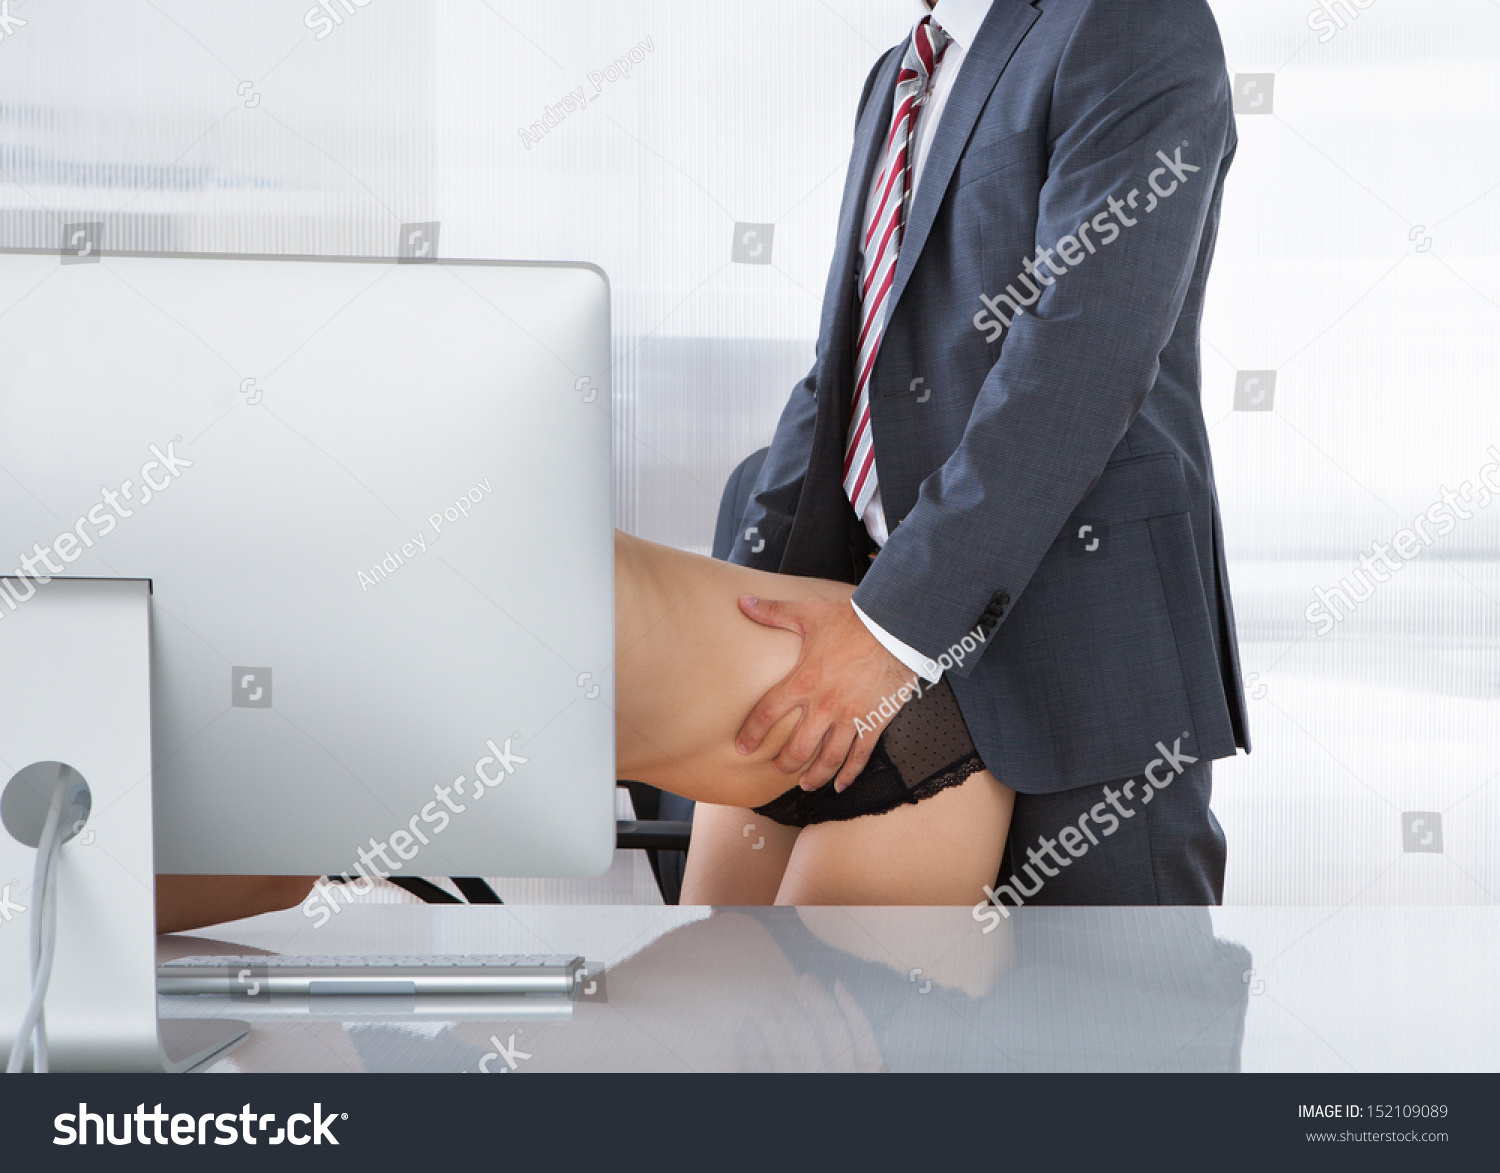 doing sex in office